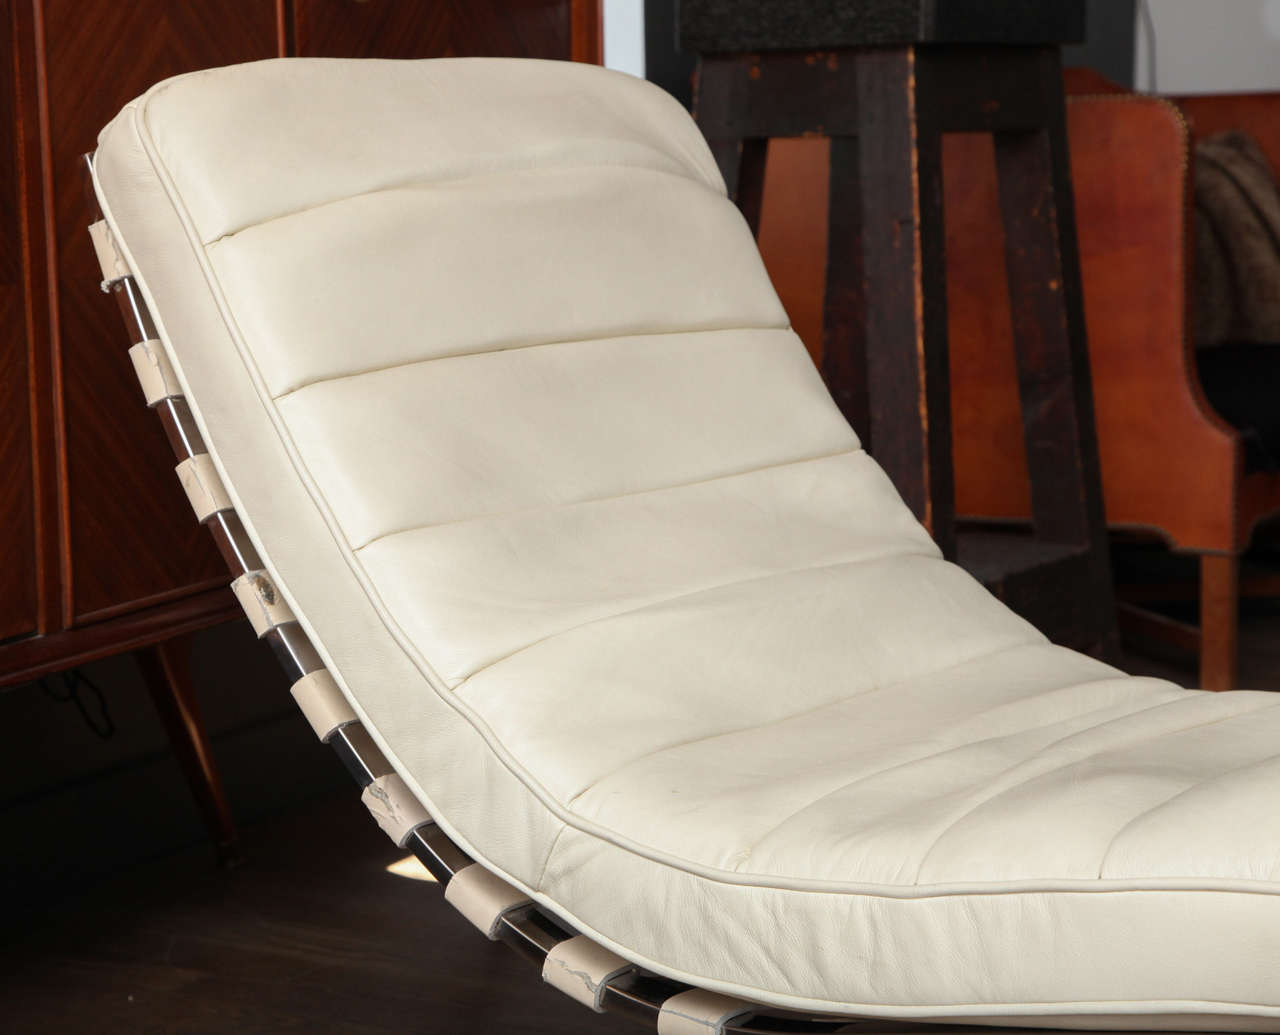 White Leather Chaises Longue at 1stdibs